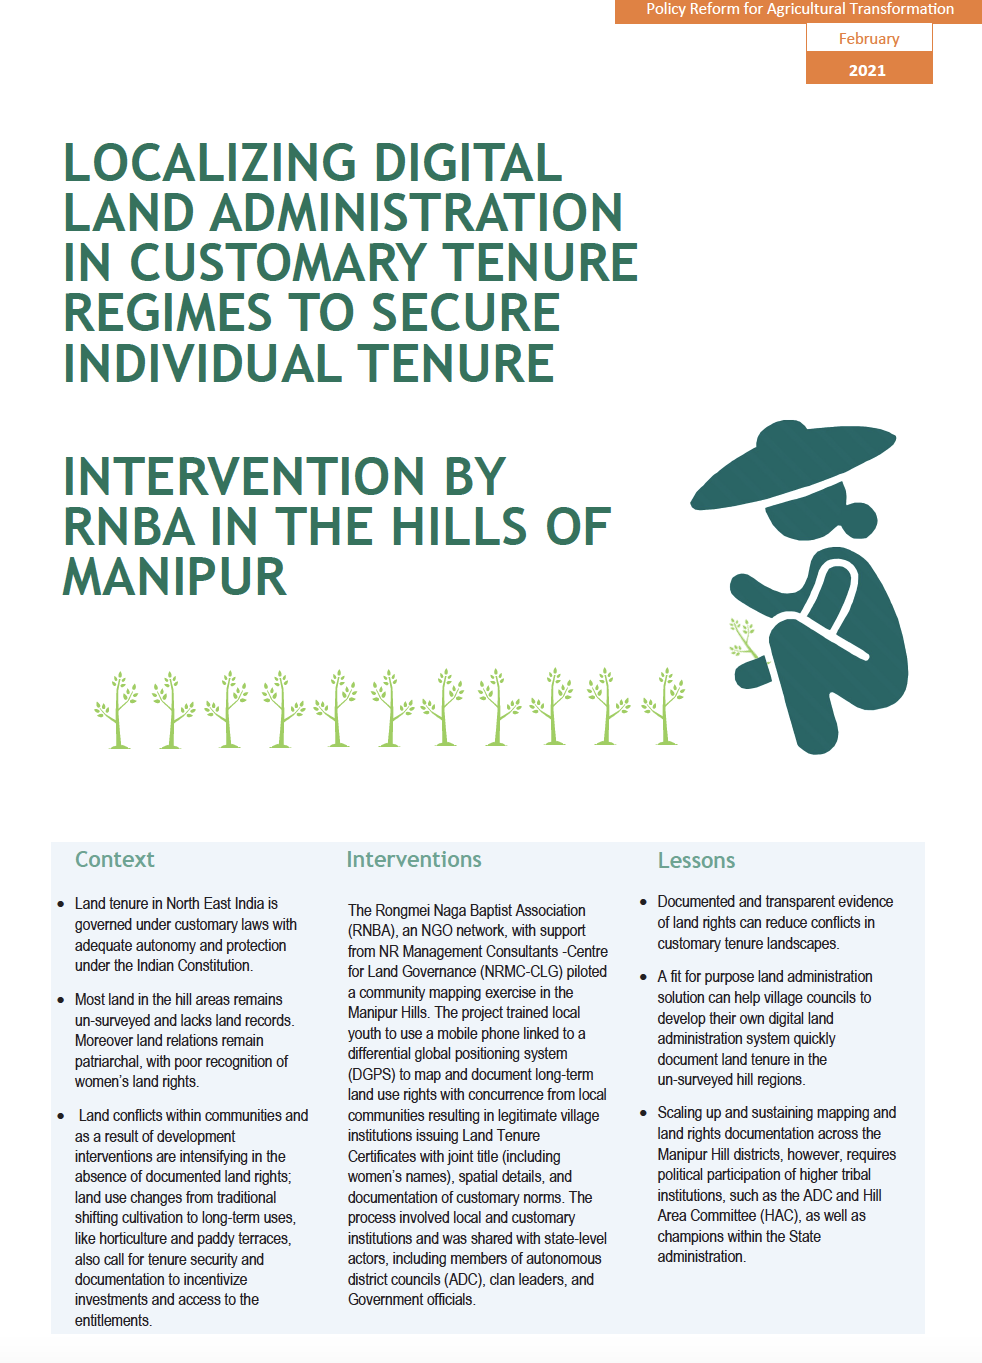 Localizing Digital Land Administration in Customary Tenure Regimes to Secure Individual Tenure